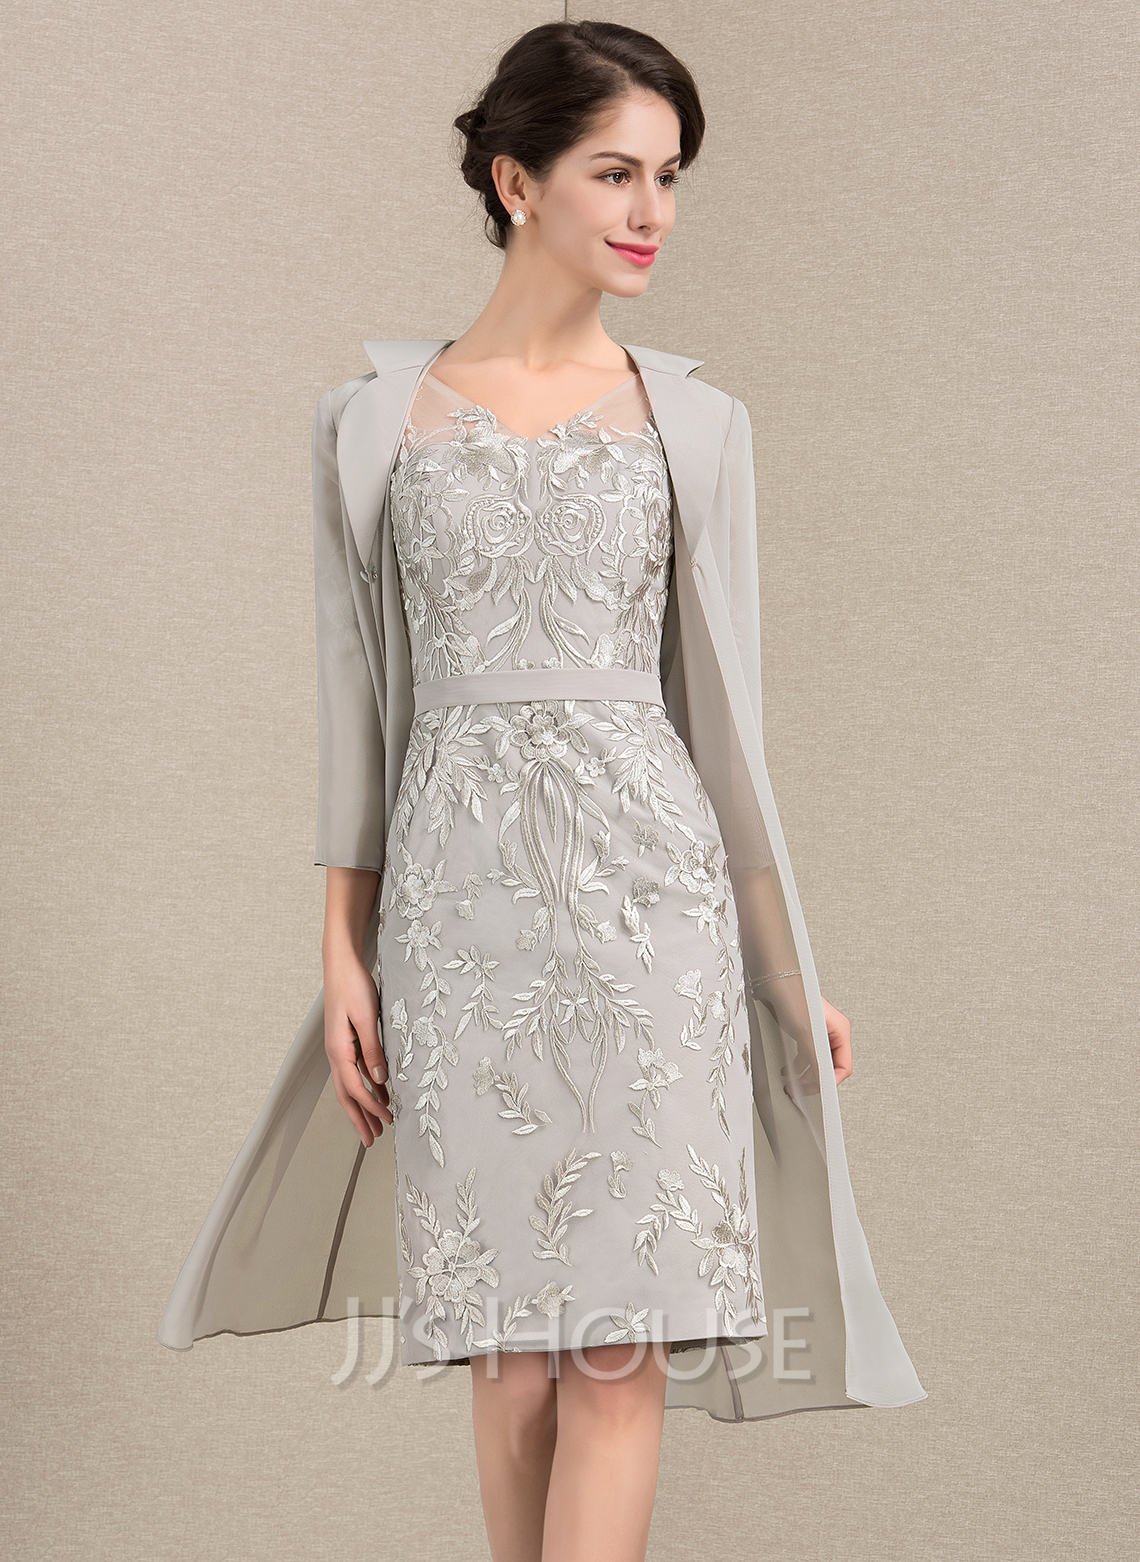 7fcf93f2758a92 Sheath/Column V-neck Knee-Length Lace Mother of the Bride Dress. Loading  zoom